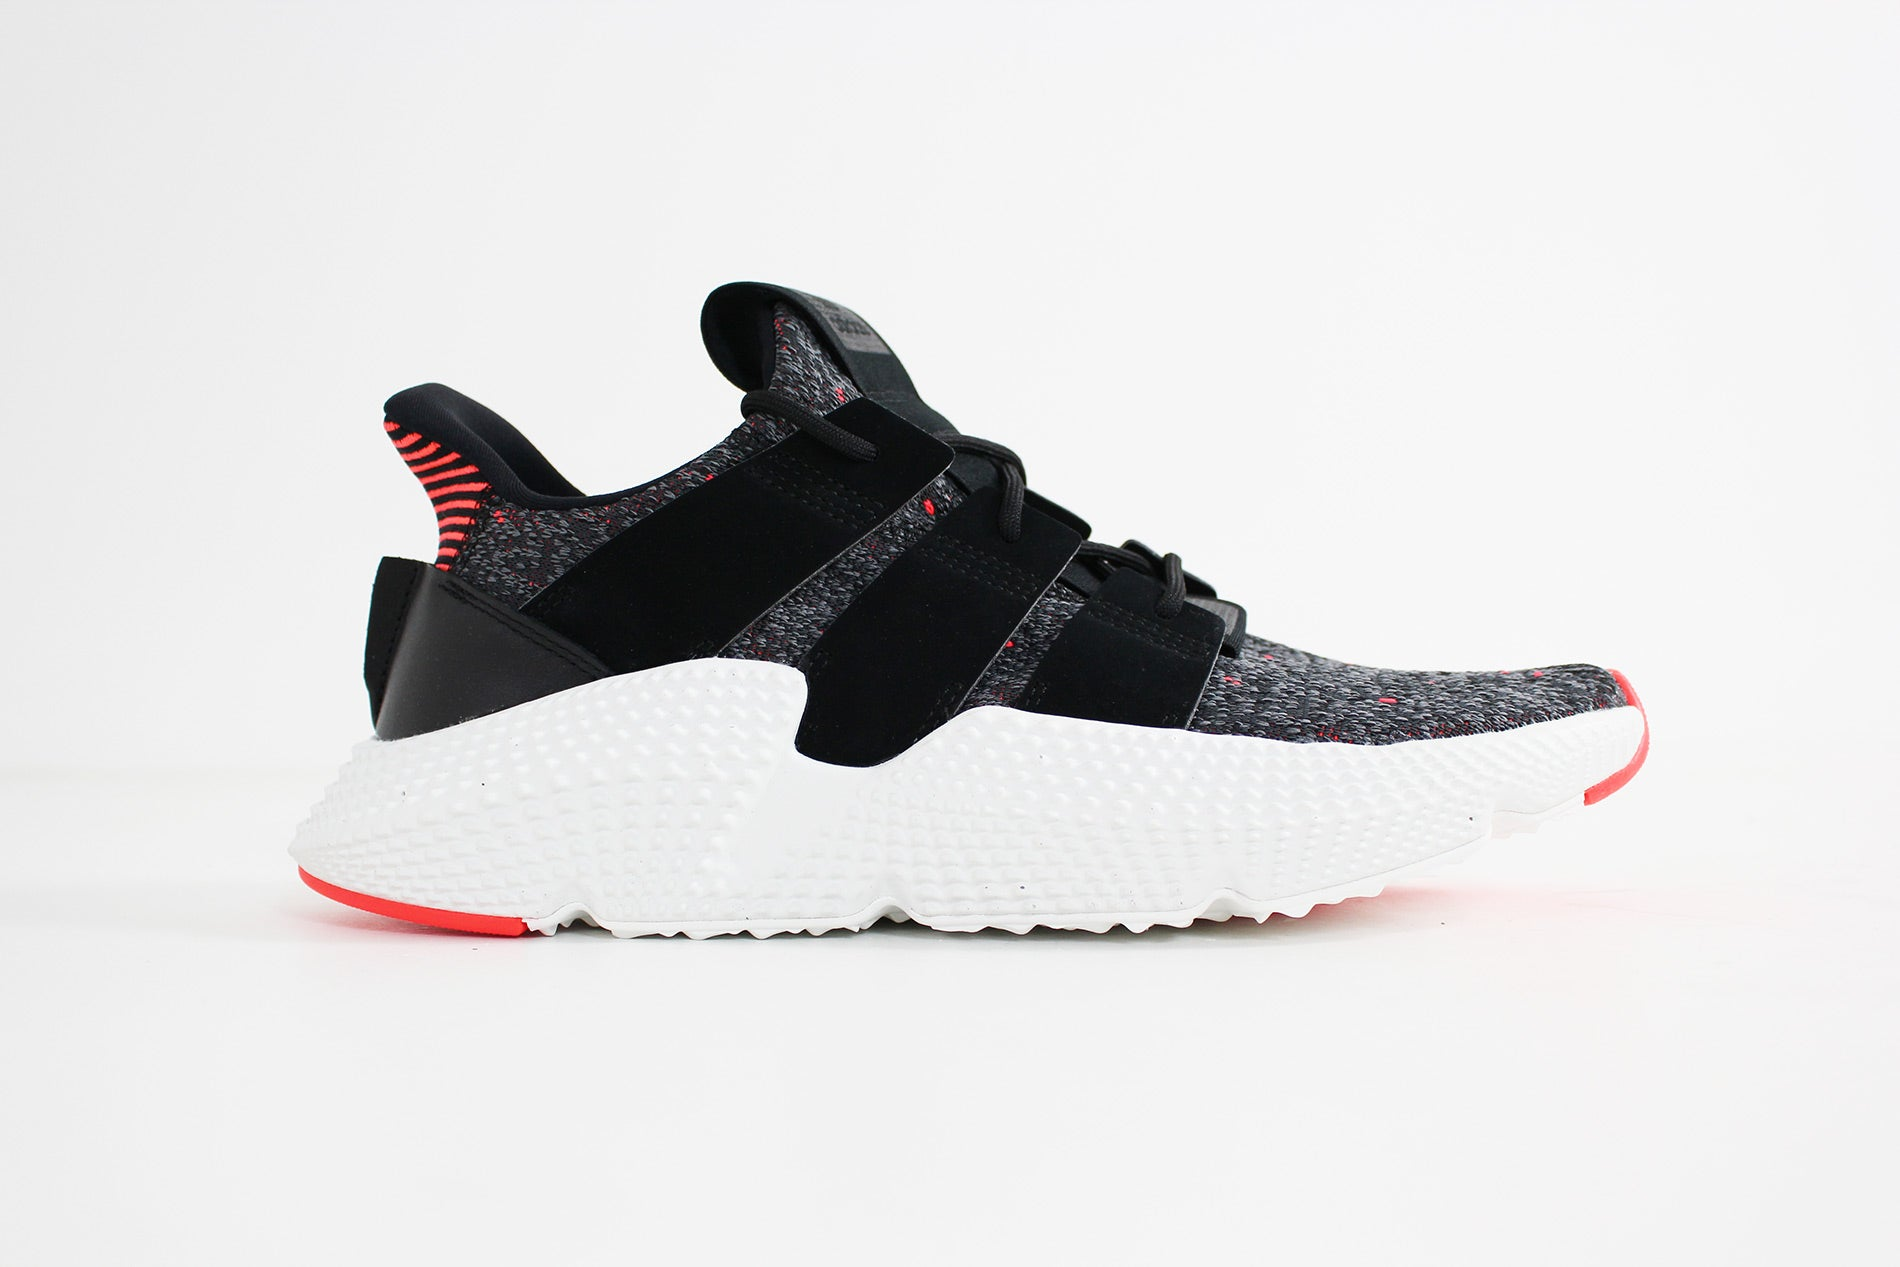 Adidas -  Prophere  (Core Black/ Core Black/ Solar Red) CQ3022